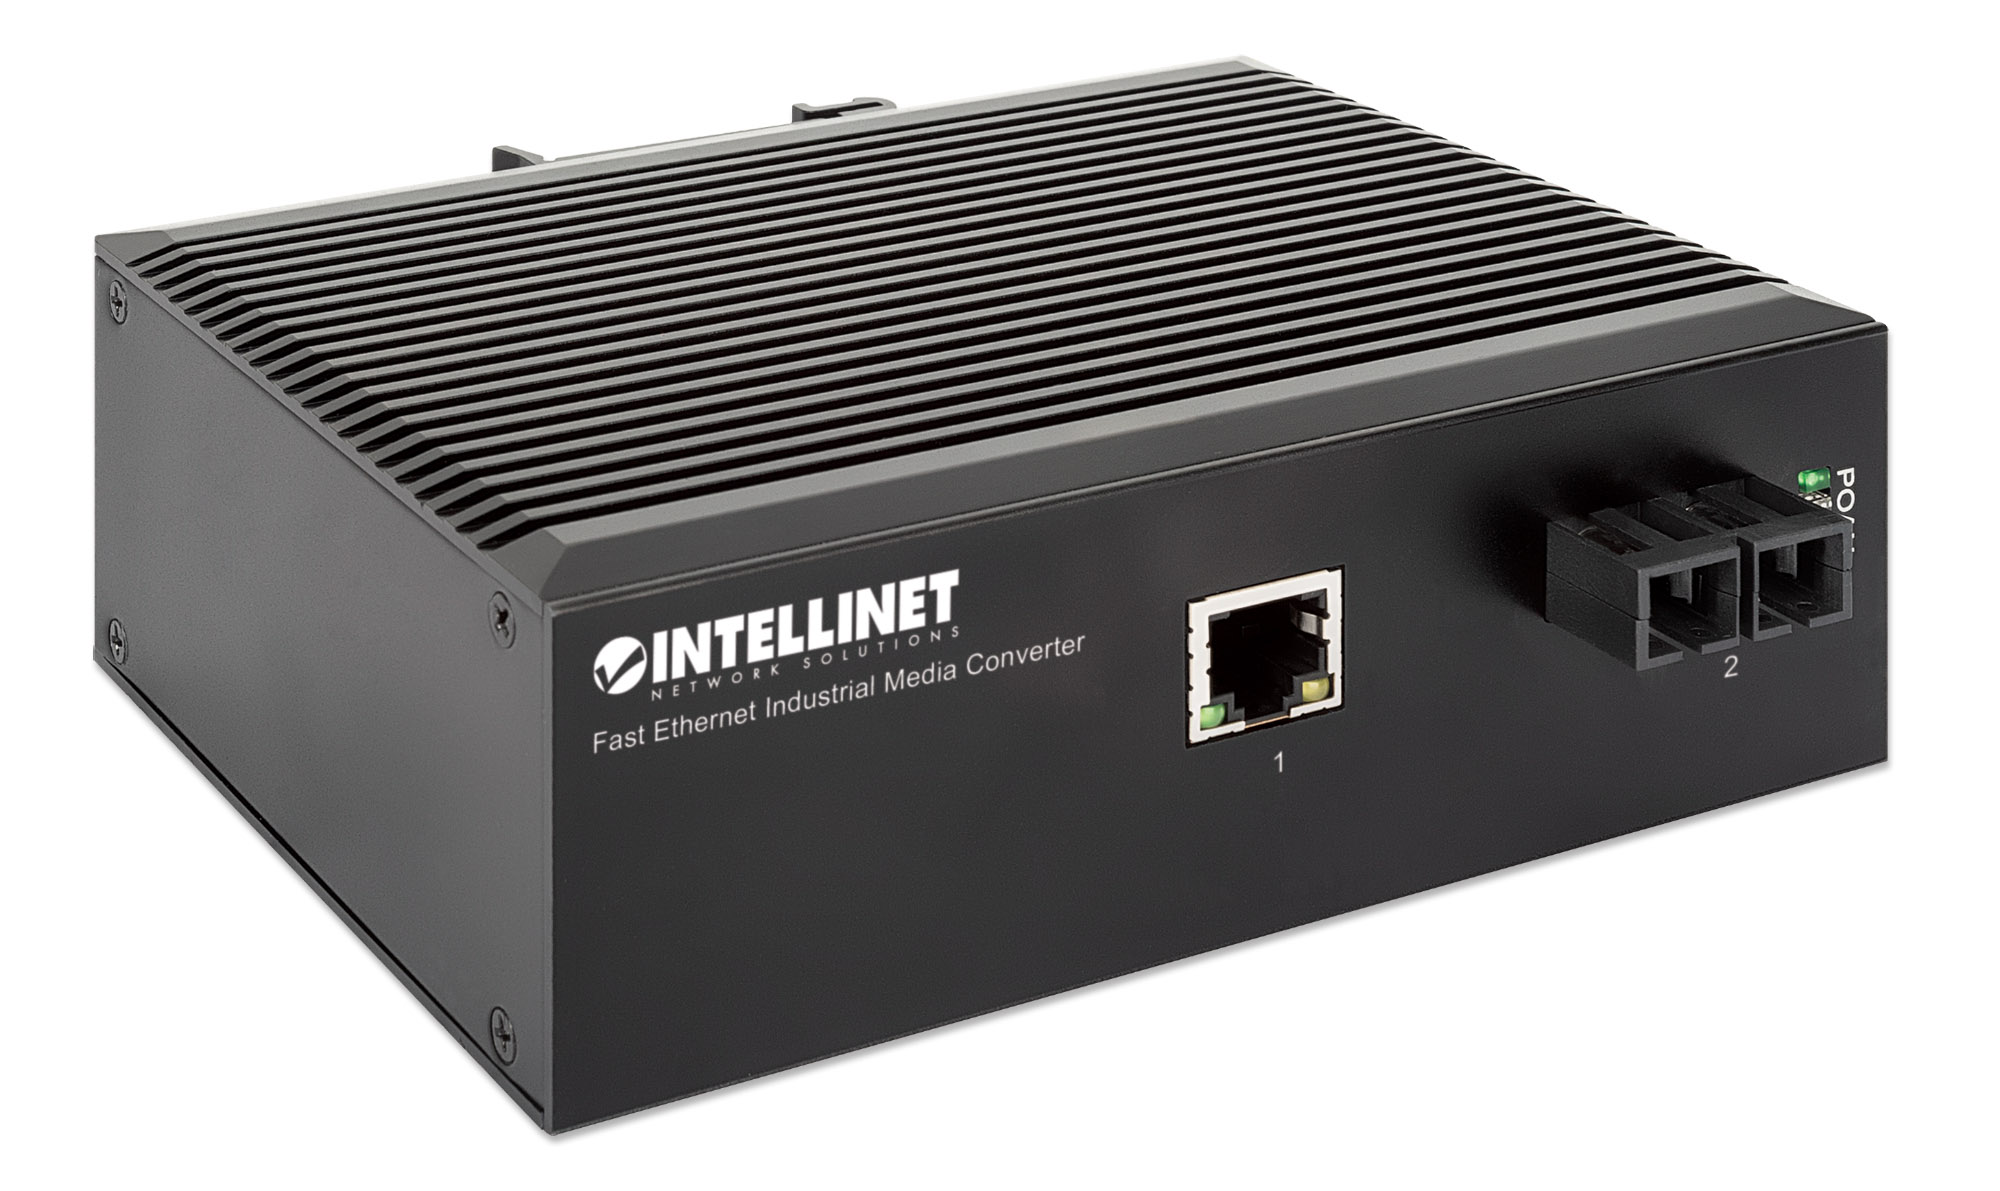 Fast Ethernet Industrial Media Converter